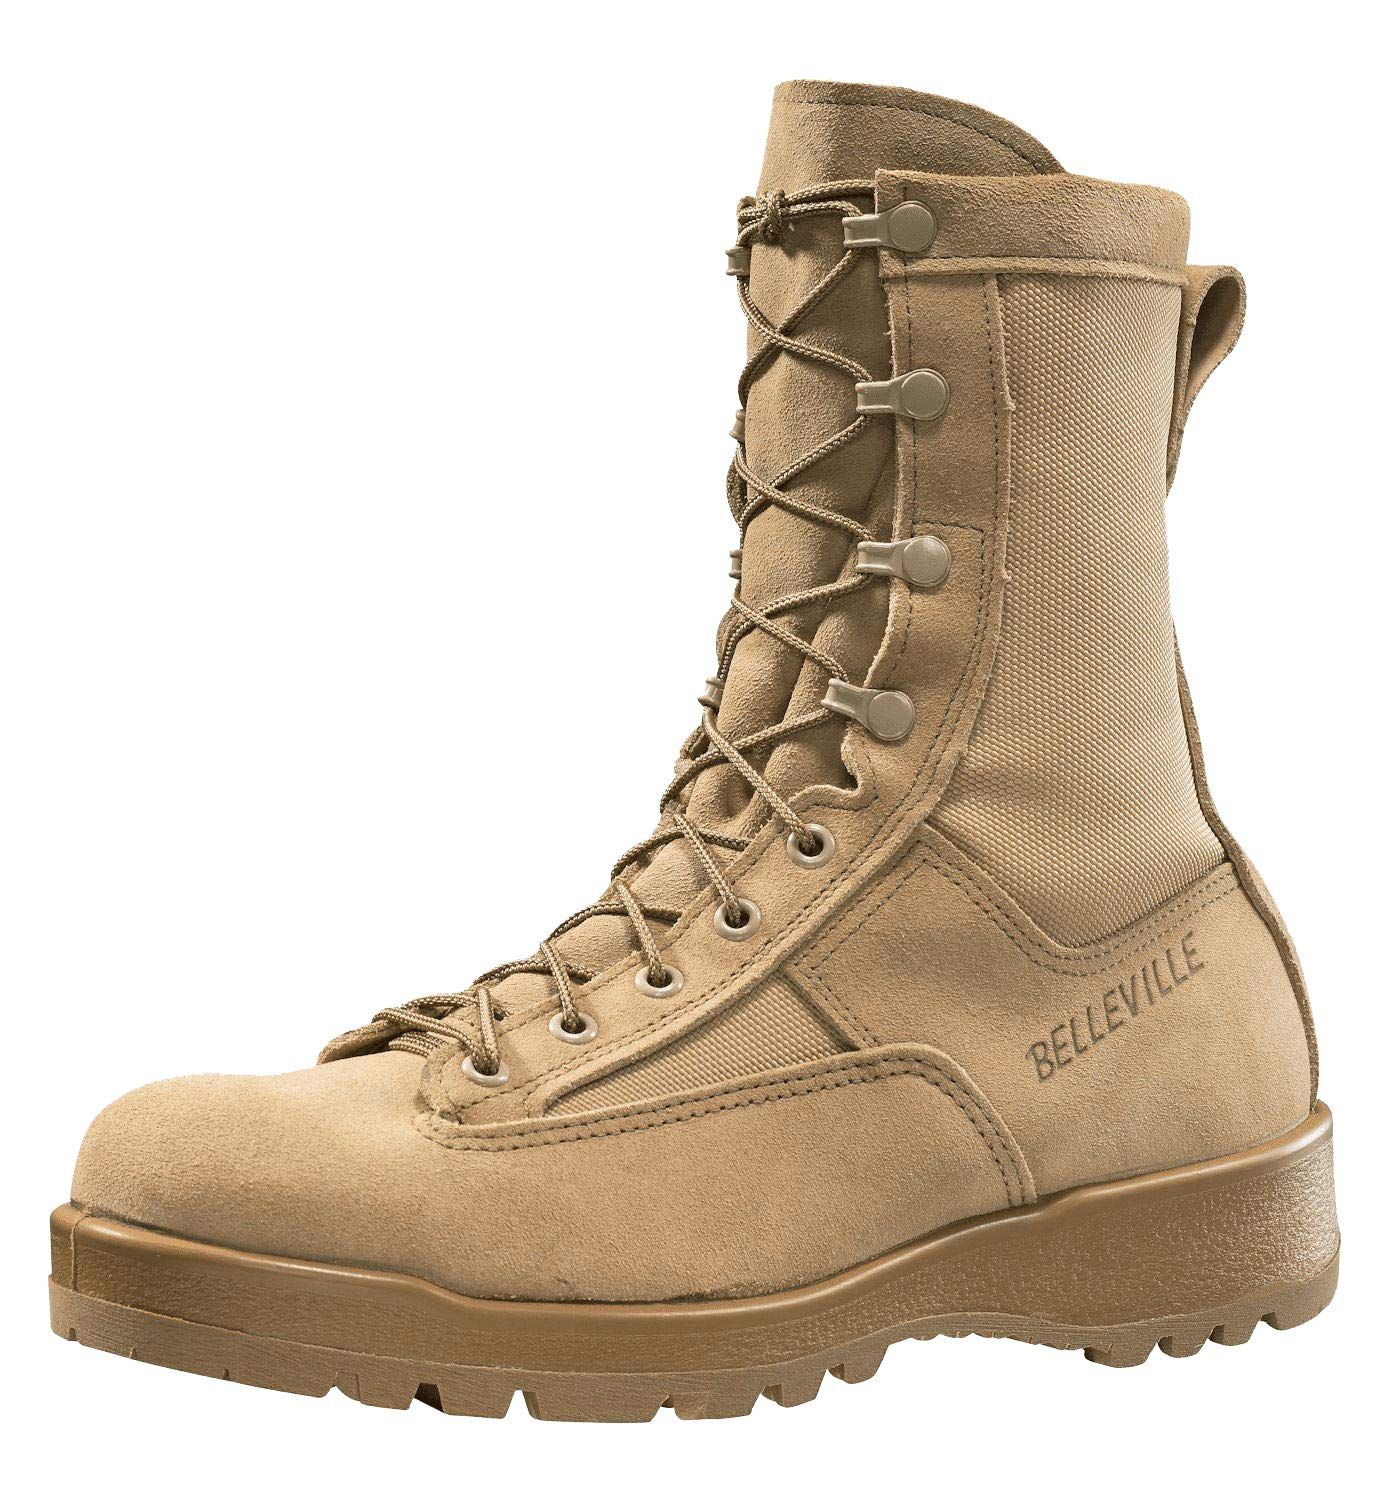 c0d542f44f8 Belleville New Made in US 790 G GI Desert Tan Military Army Combat  Waterproof Goretex Temperate Flight Boots 790G